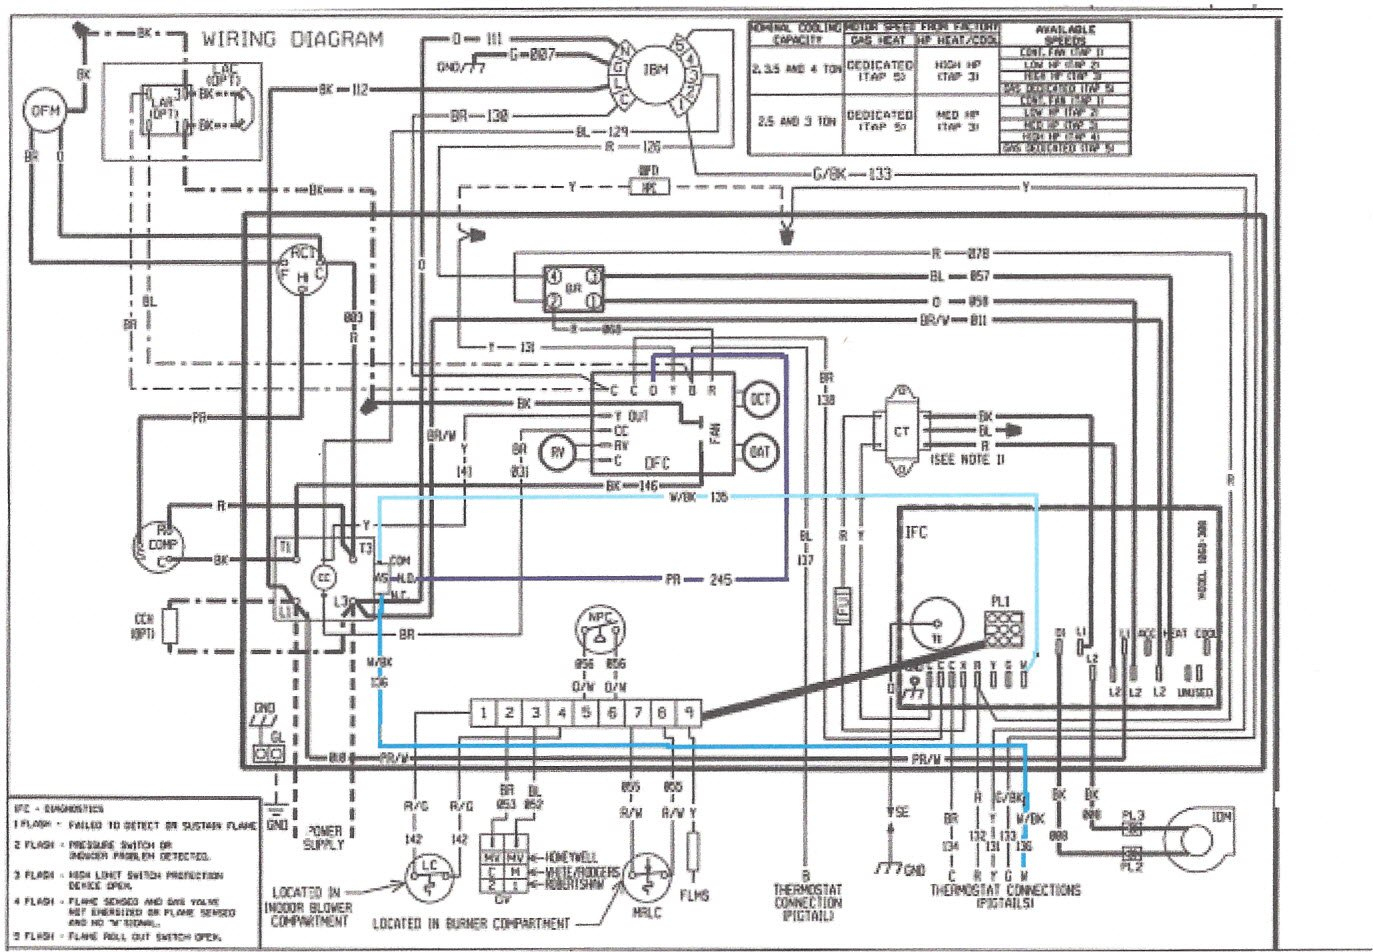 Heat Pump Wiring Diagram View - Wiring Diagrams Thumbs - Heat Pump Wiring Diagram Schematic